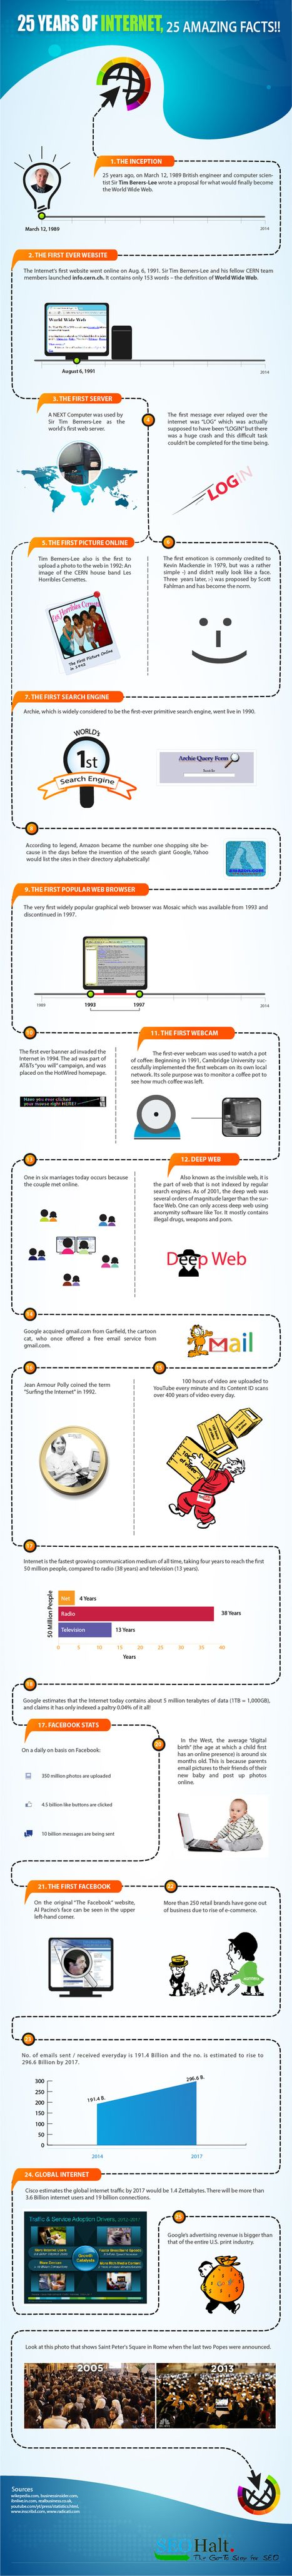 25 Amazing Facts about the Internet [Infographic] | visualizing #socialmediatips | Scoop.it